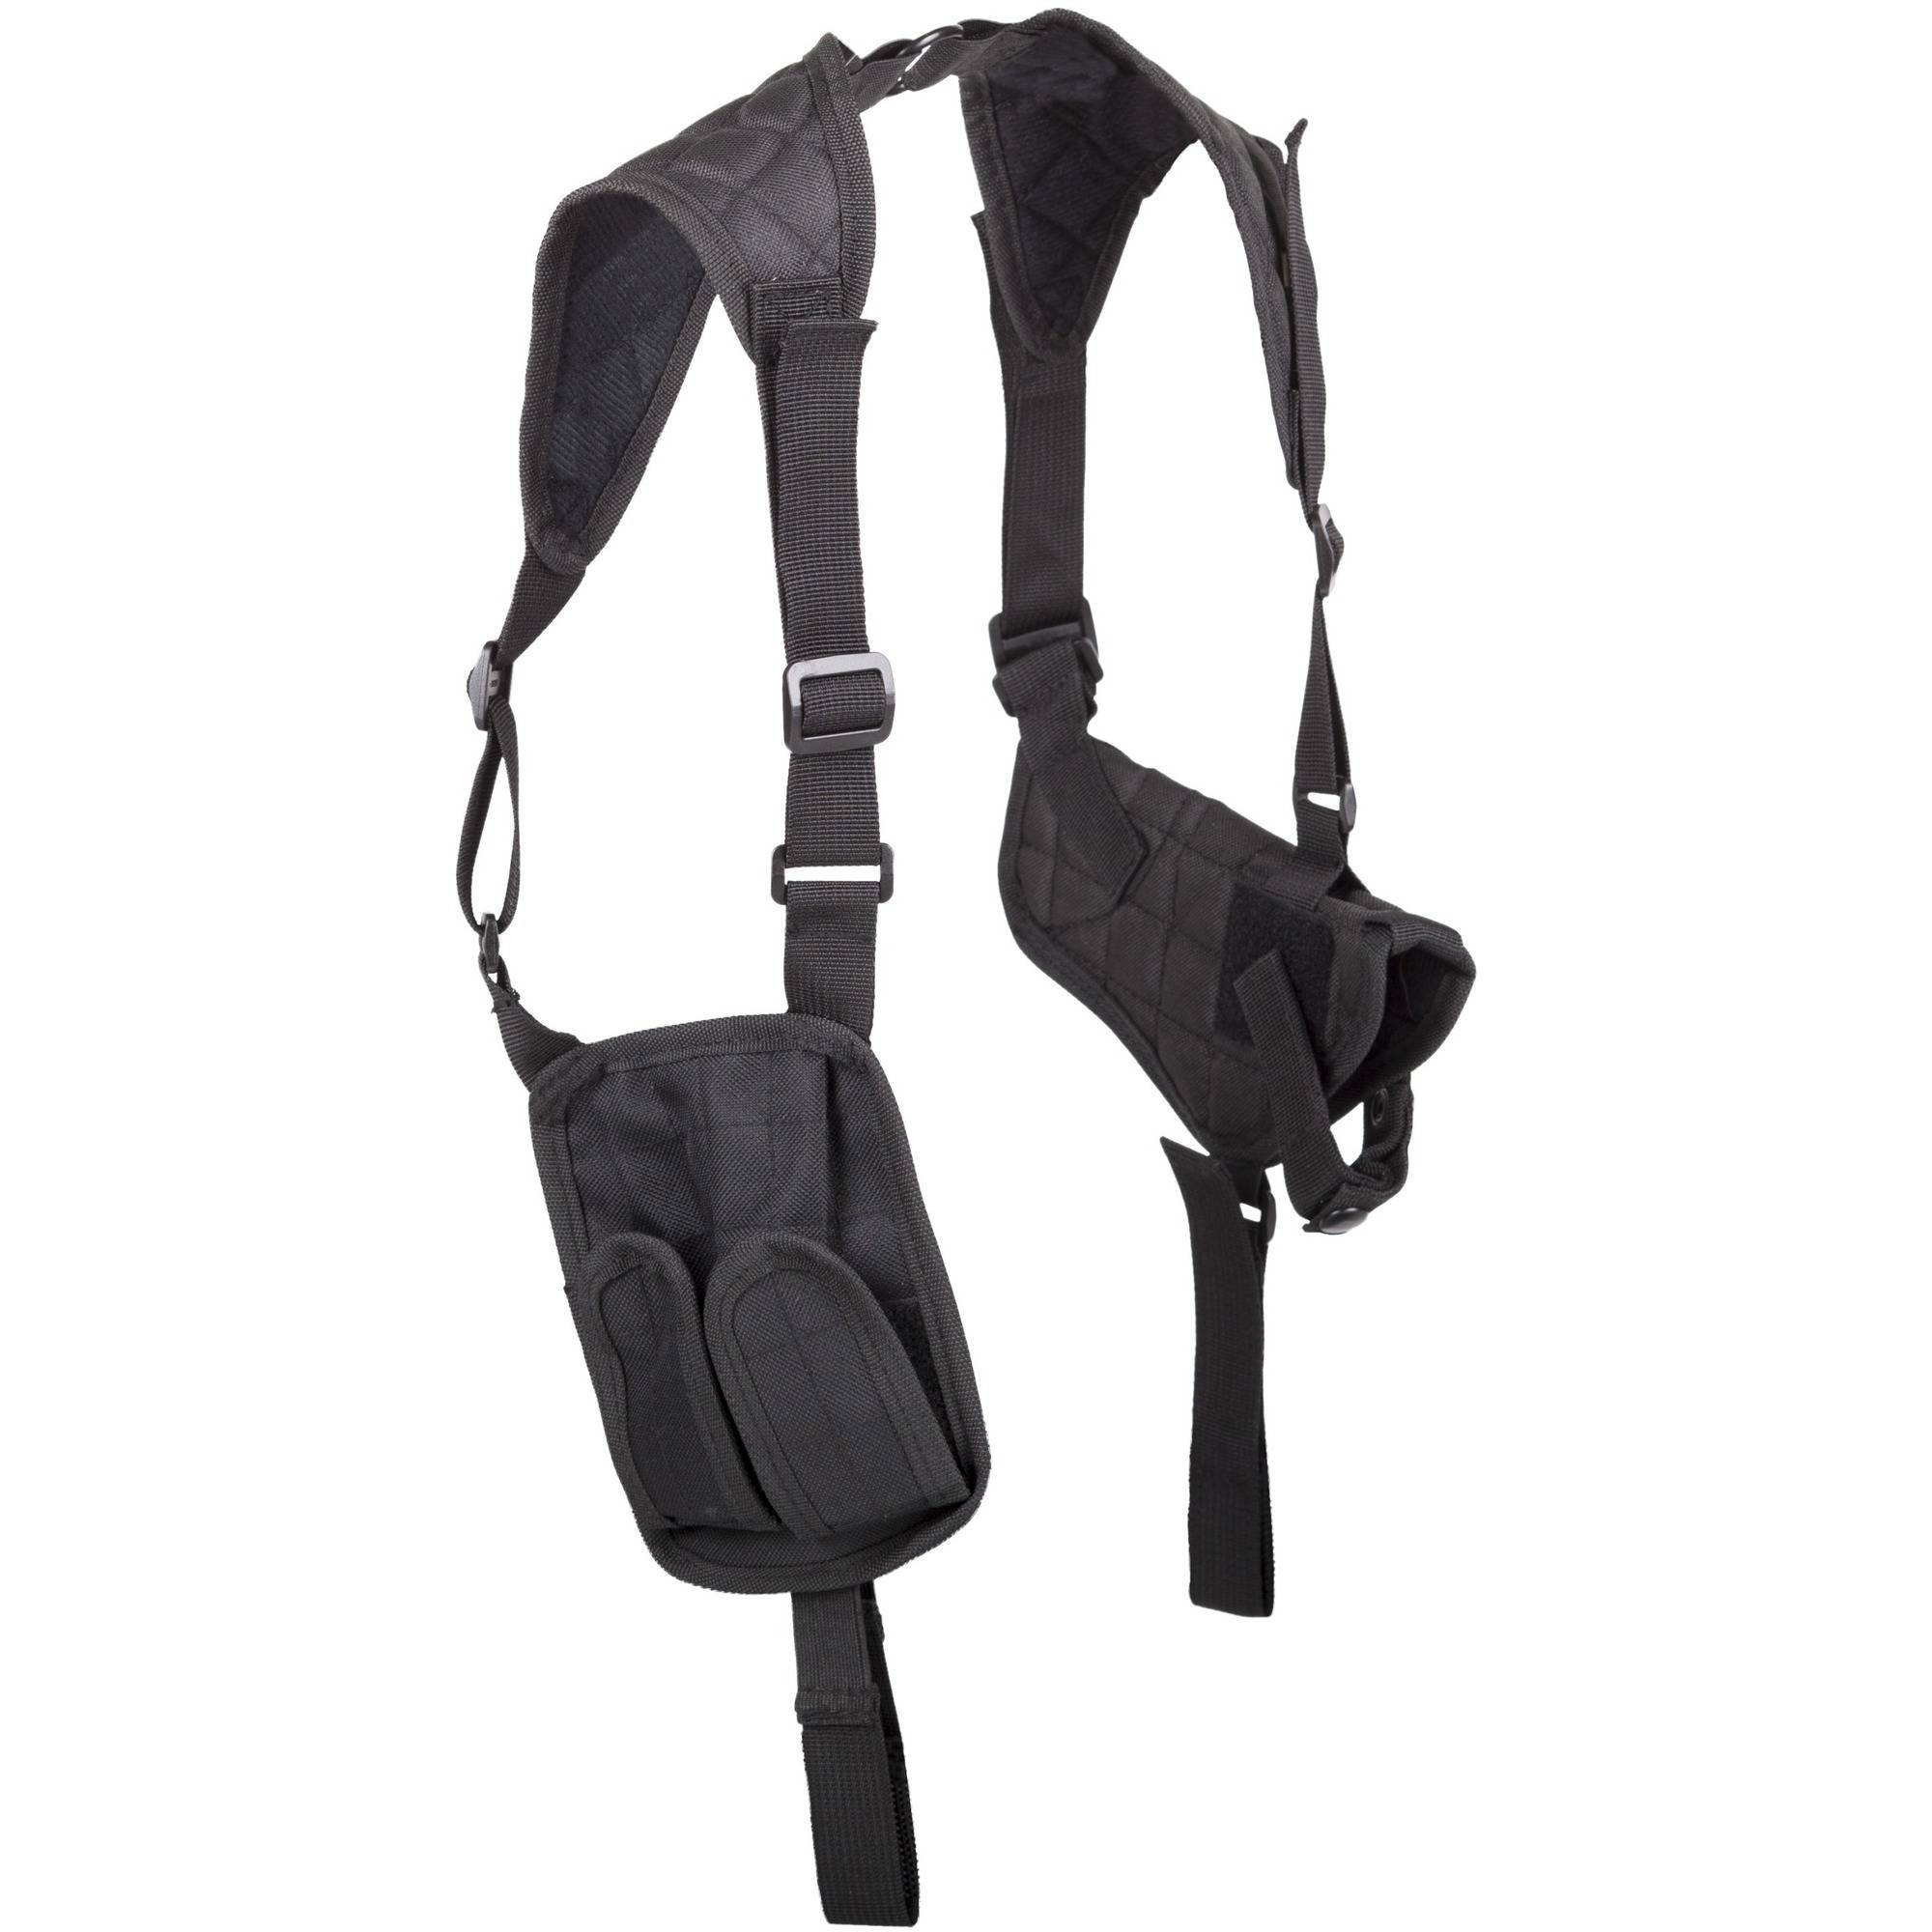 Game Face Shoulder Holster SAH03 Airsoft Adjustable straps, fits most handguns